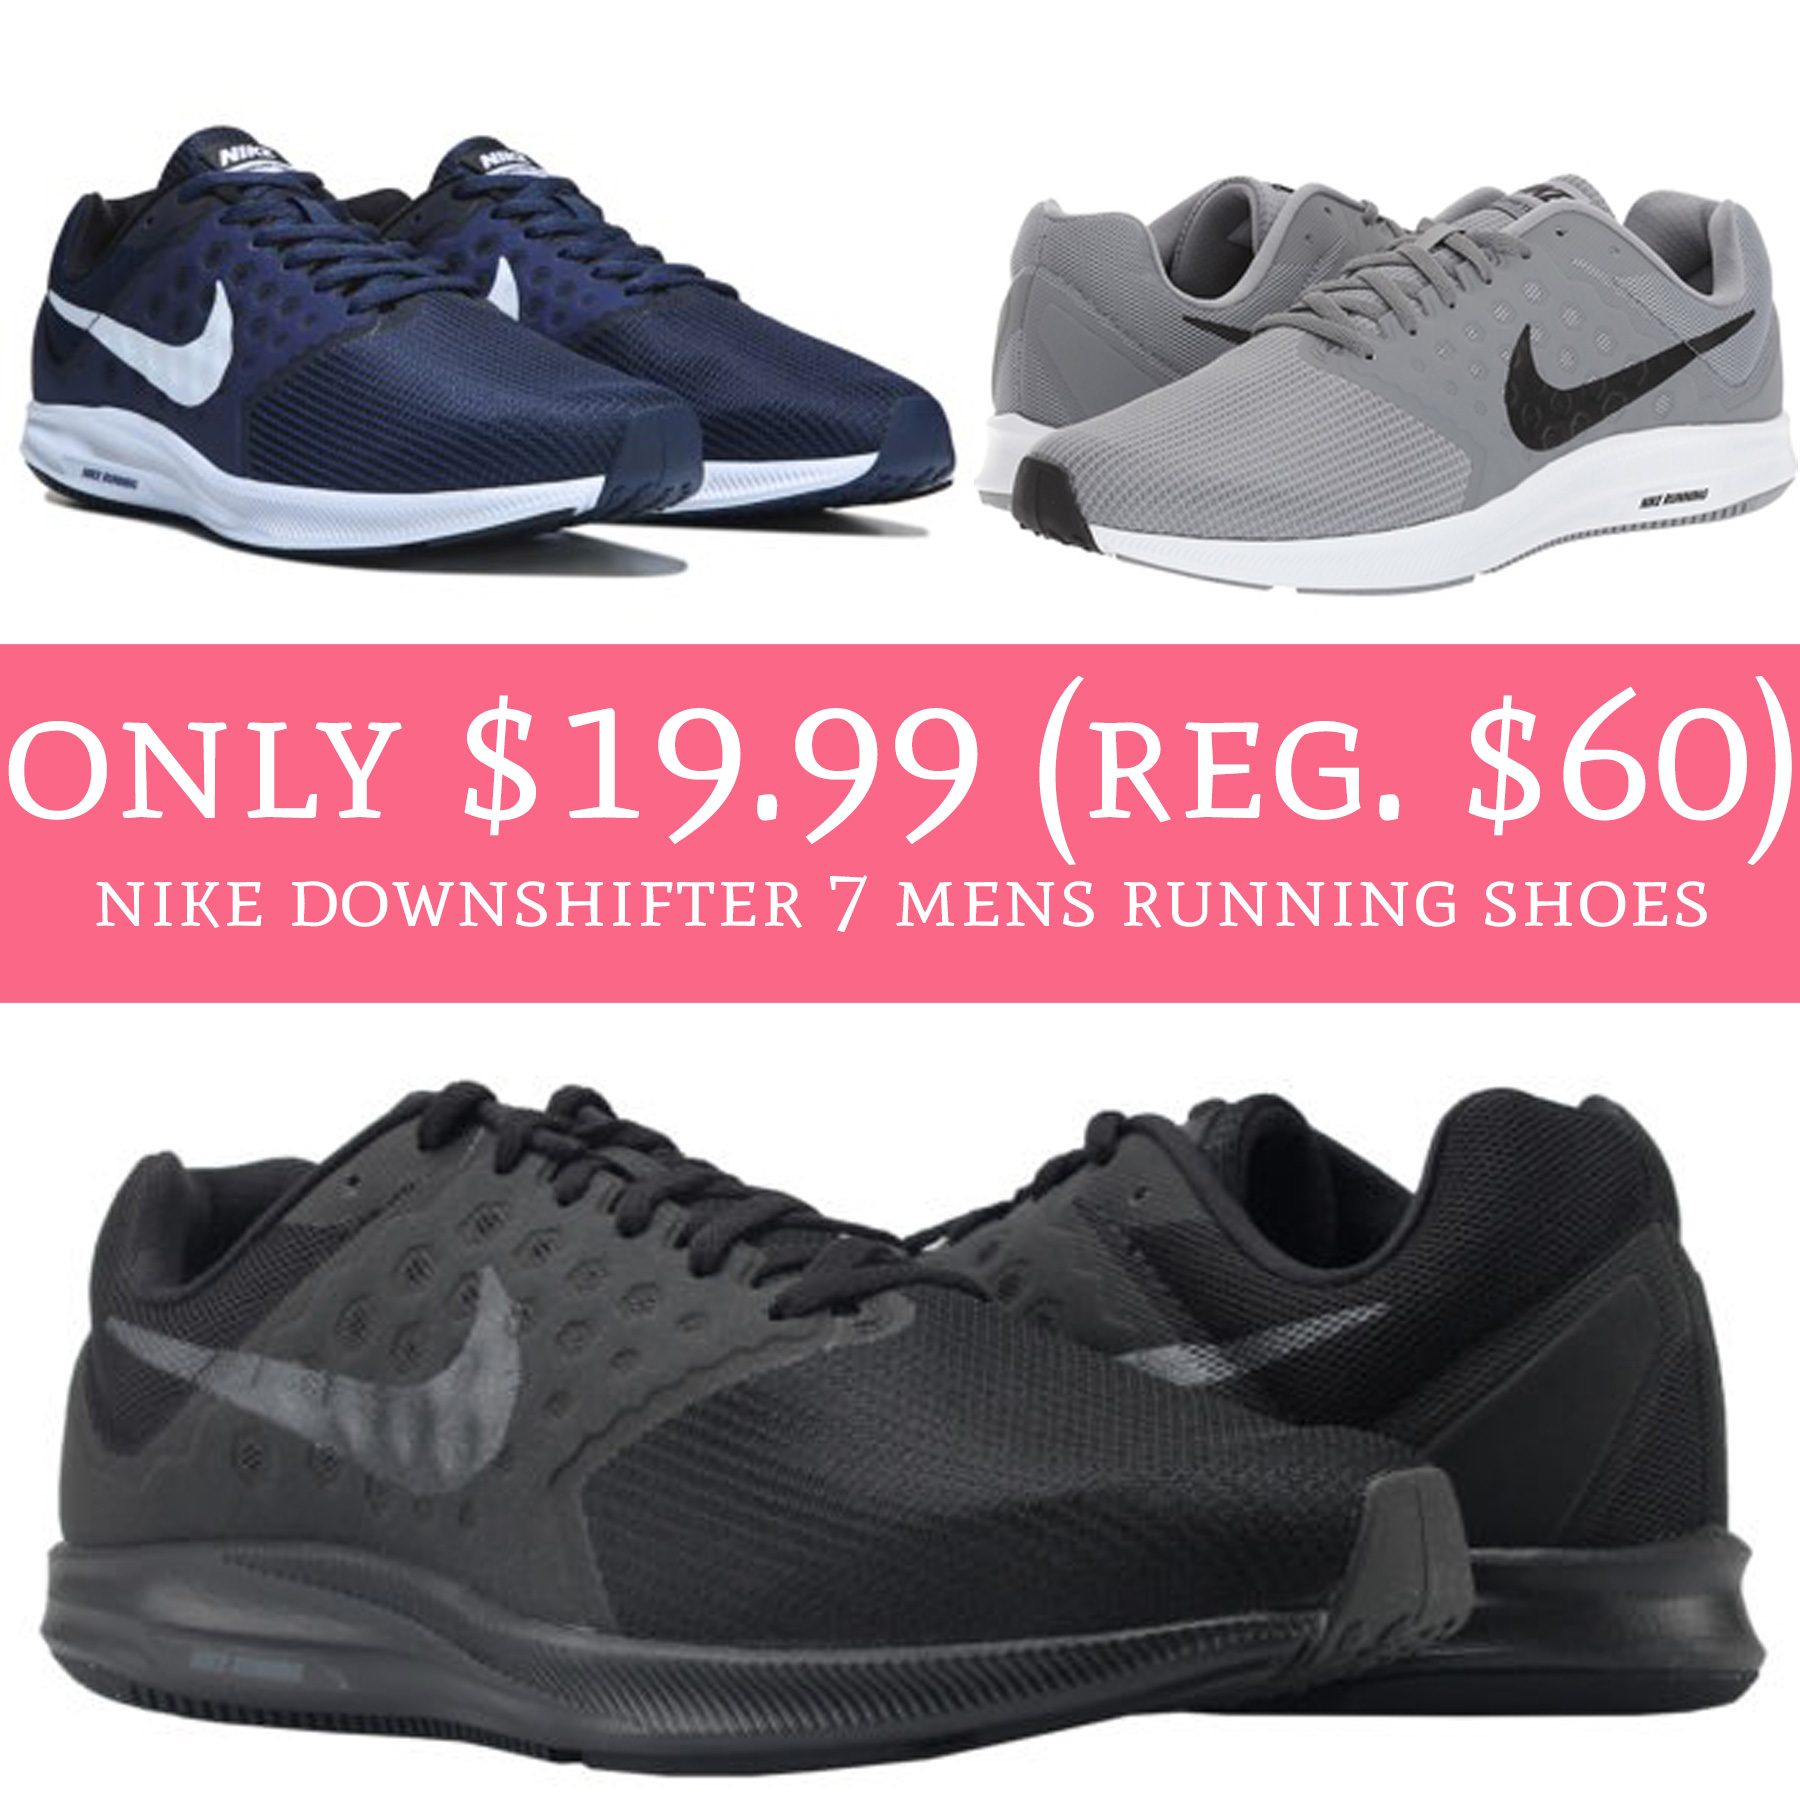 07a6844bafb61 Only  19.99 (Reg.  60) Nike Downshifter 7 Men s Running Shoes - Deal ...